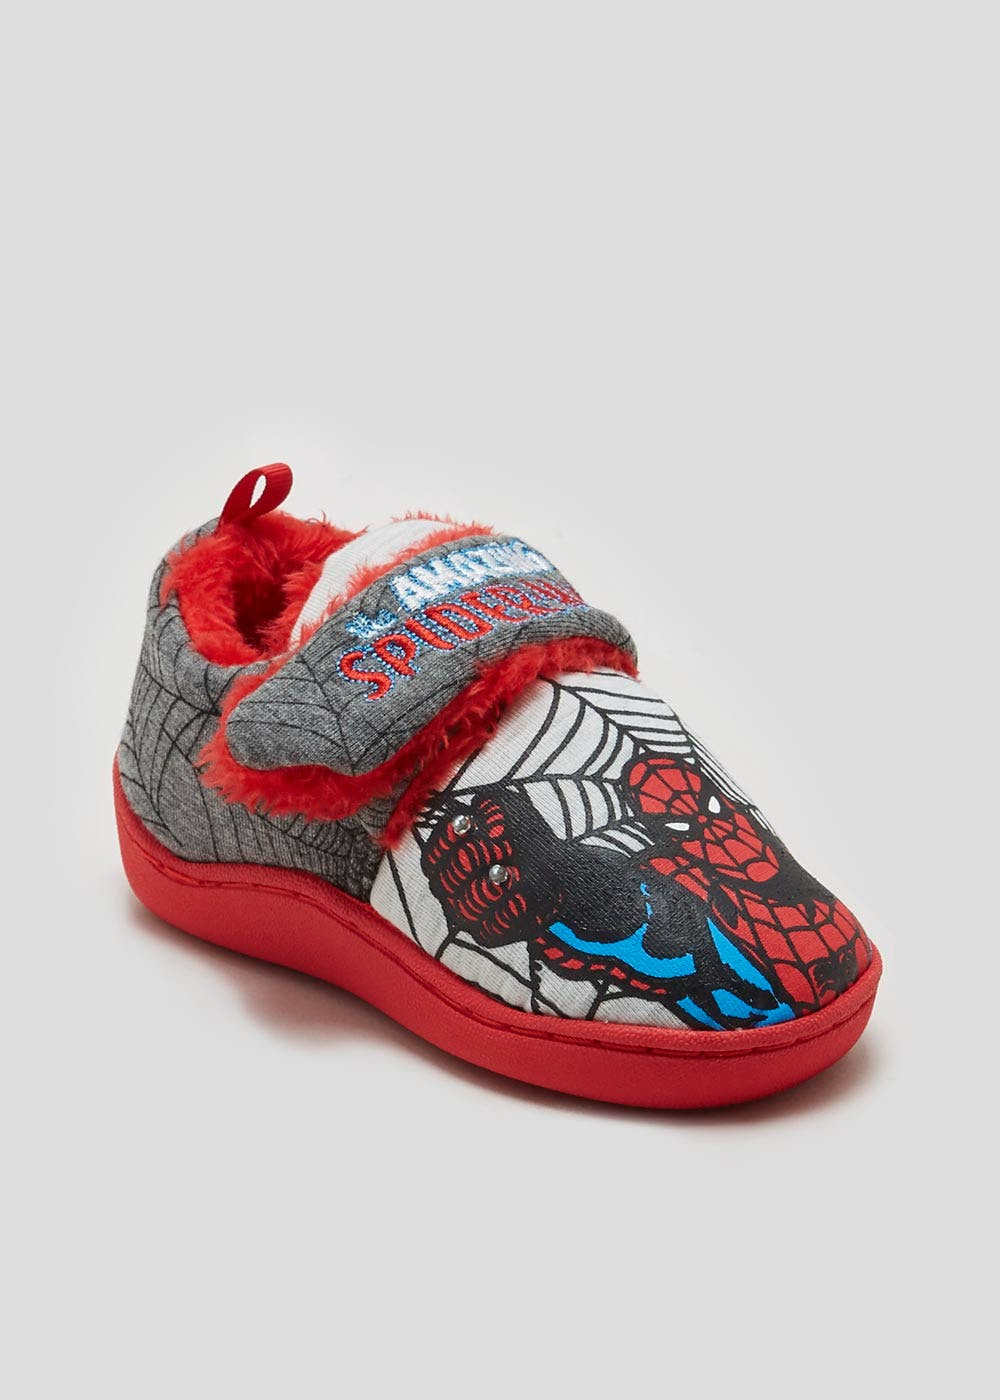 9ac106a107a Kids Spider-Man Light Up Slippers (Younger 6-13) – Red – Matalan